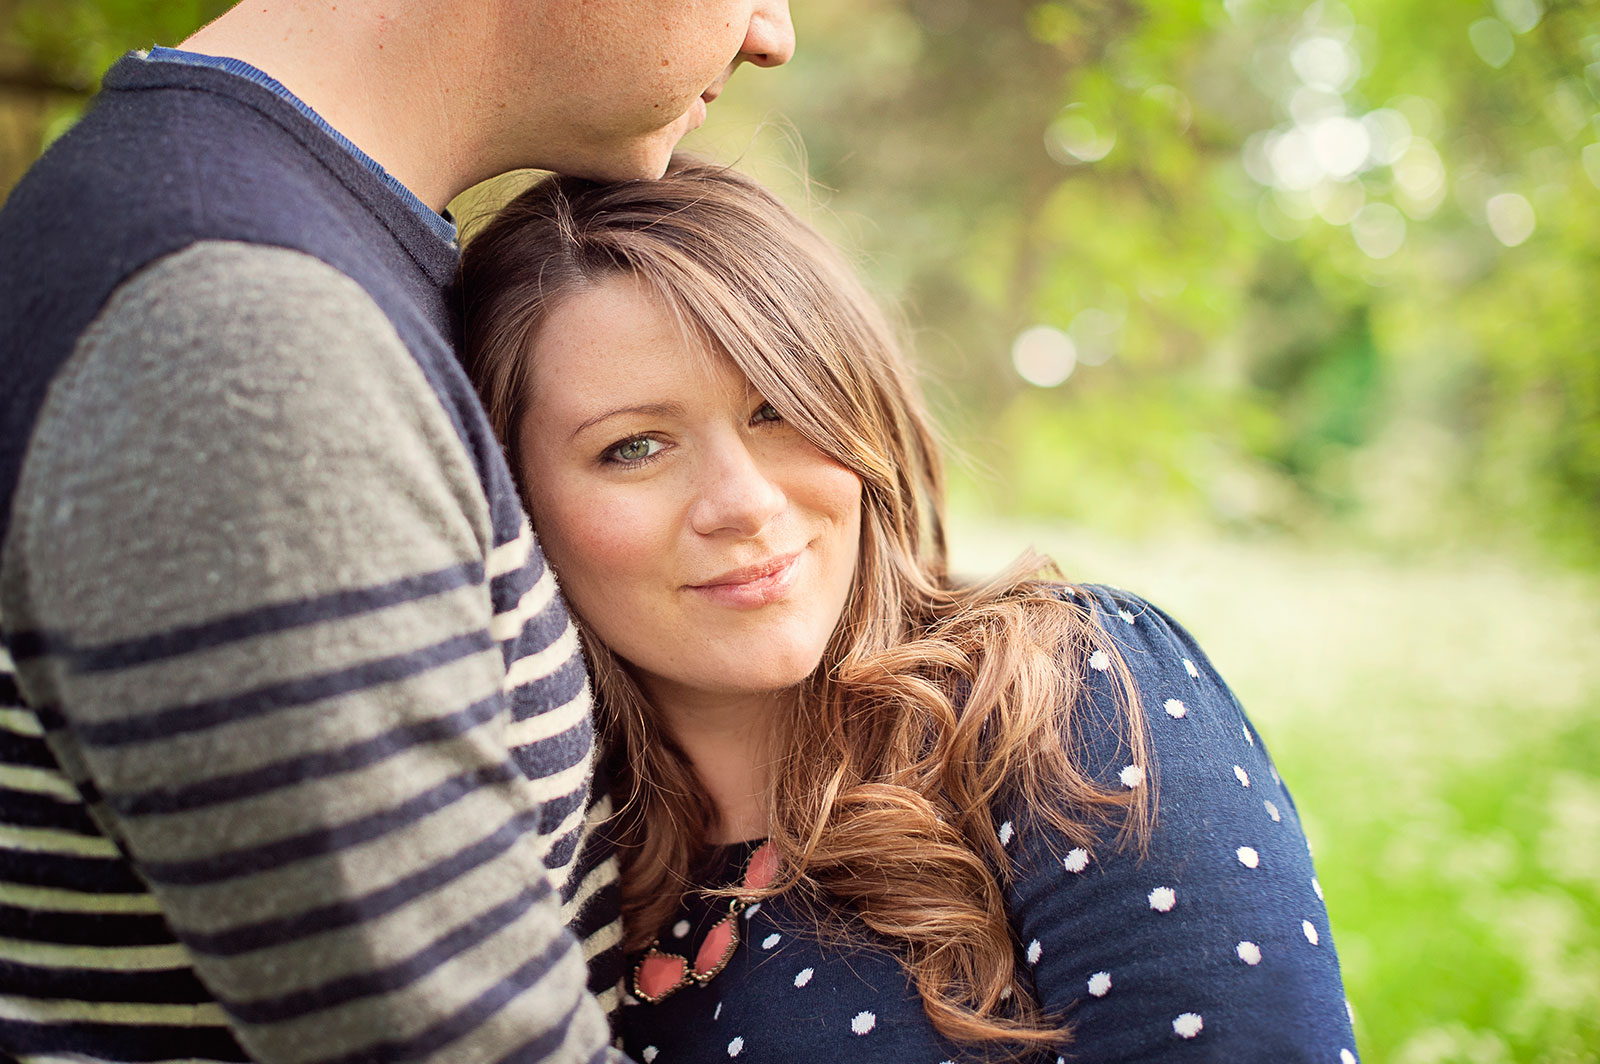 Maternity photographer in Chiswick